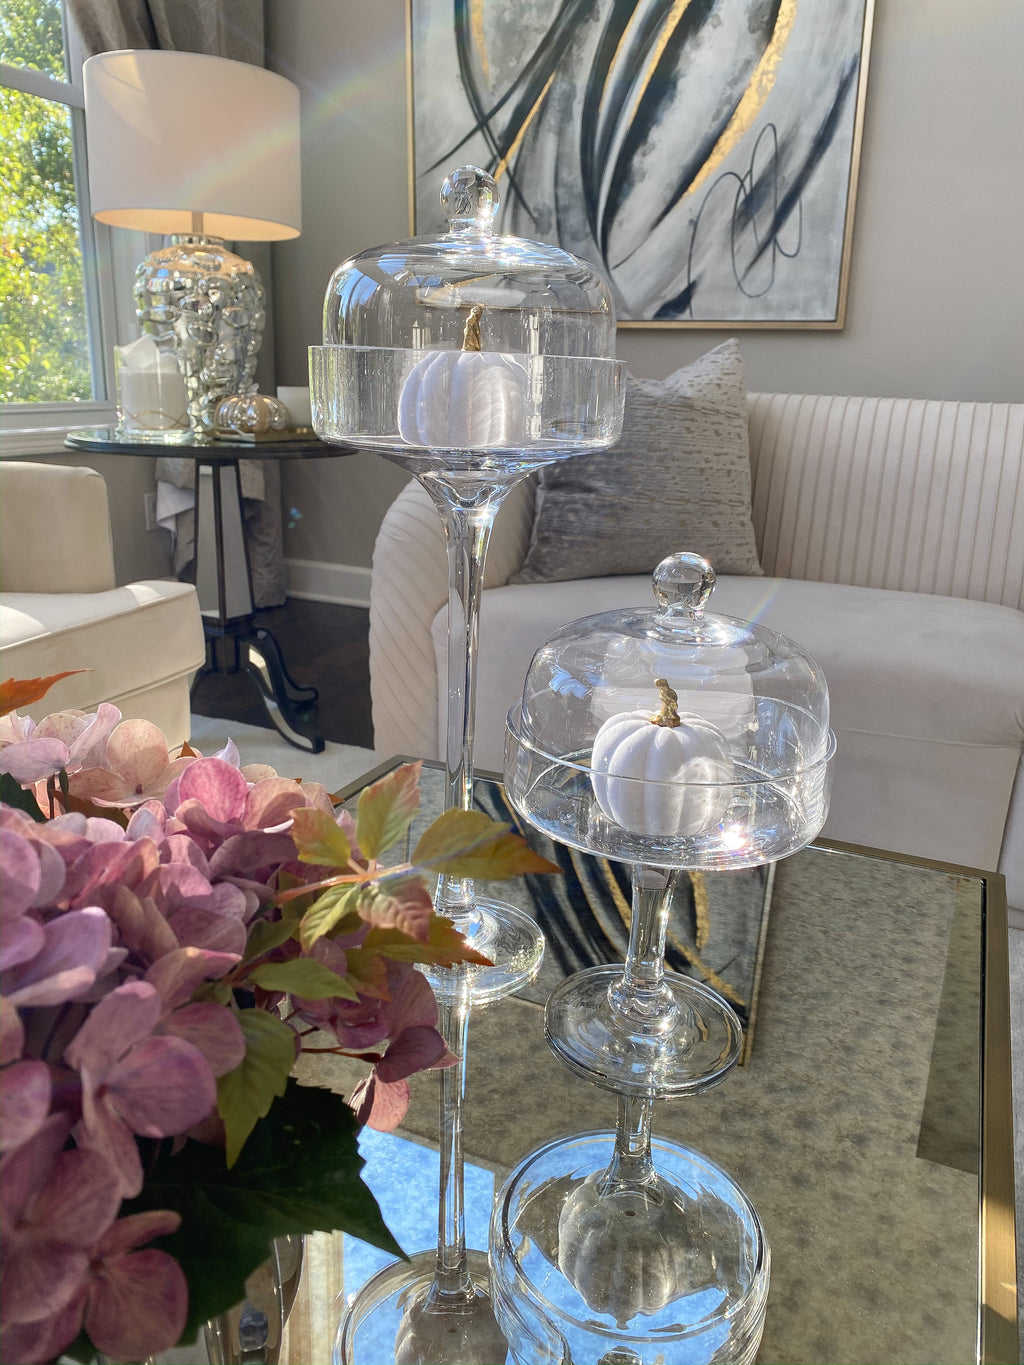 Clear Glass Stem Cake Stands with Dome (2 Sizes)-Inspire Me! Home Decor